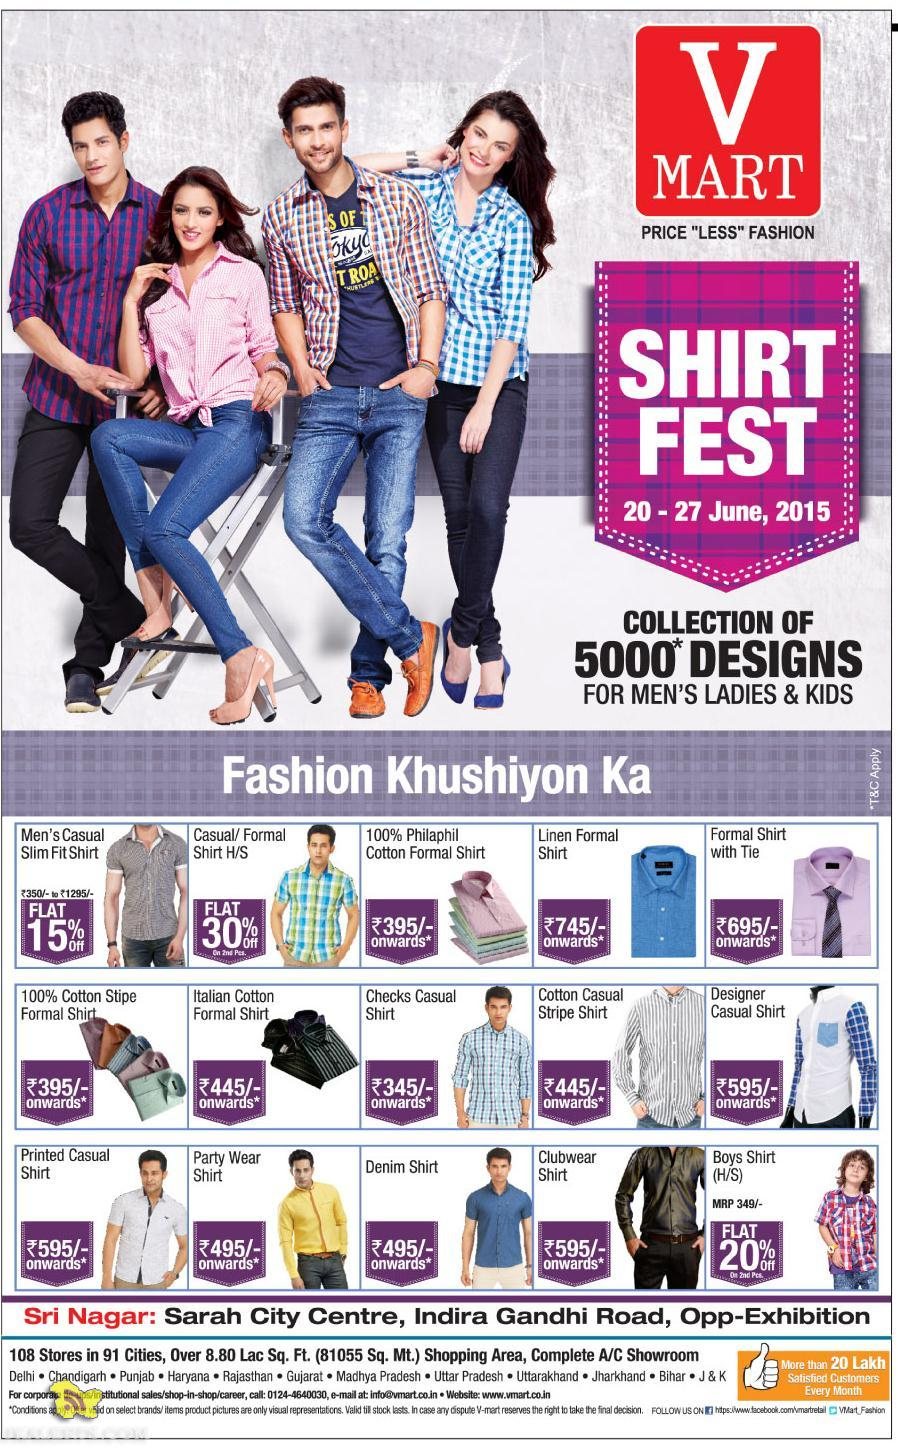 Special Offers Deals Discounts in V mart Sarah City mall Srinagar